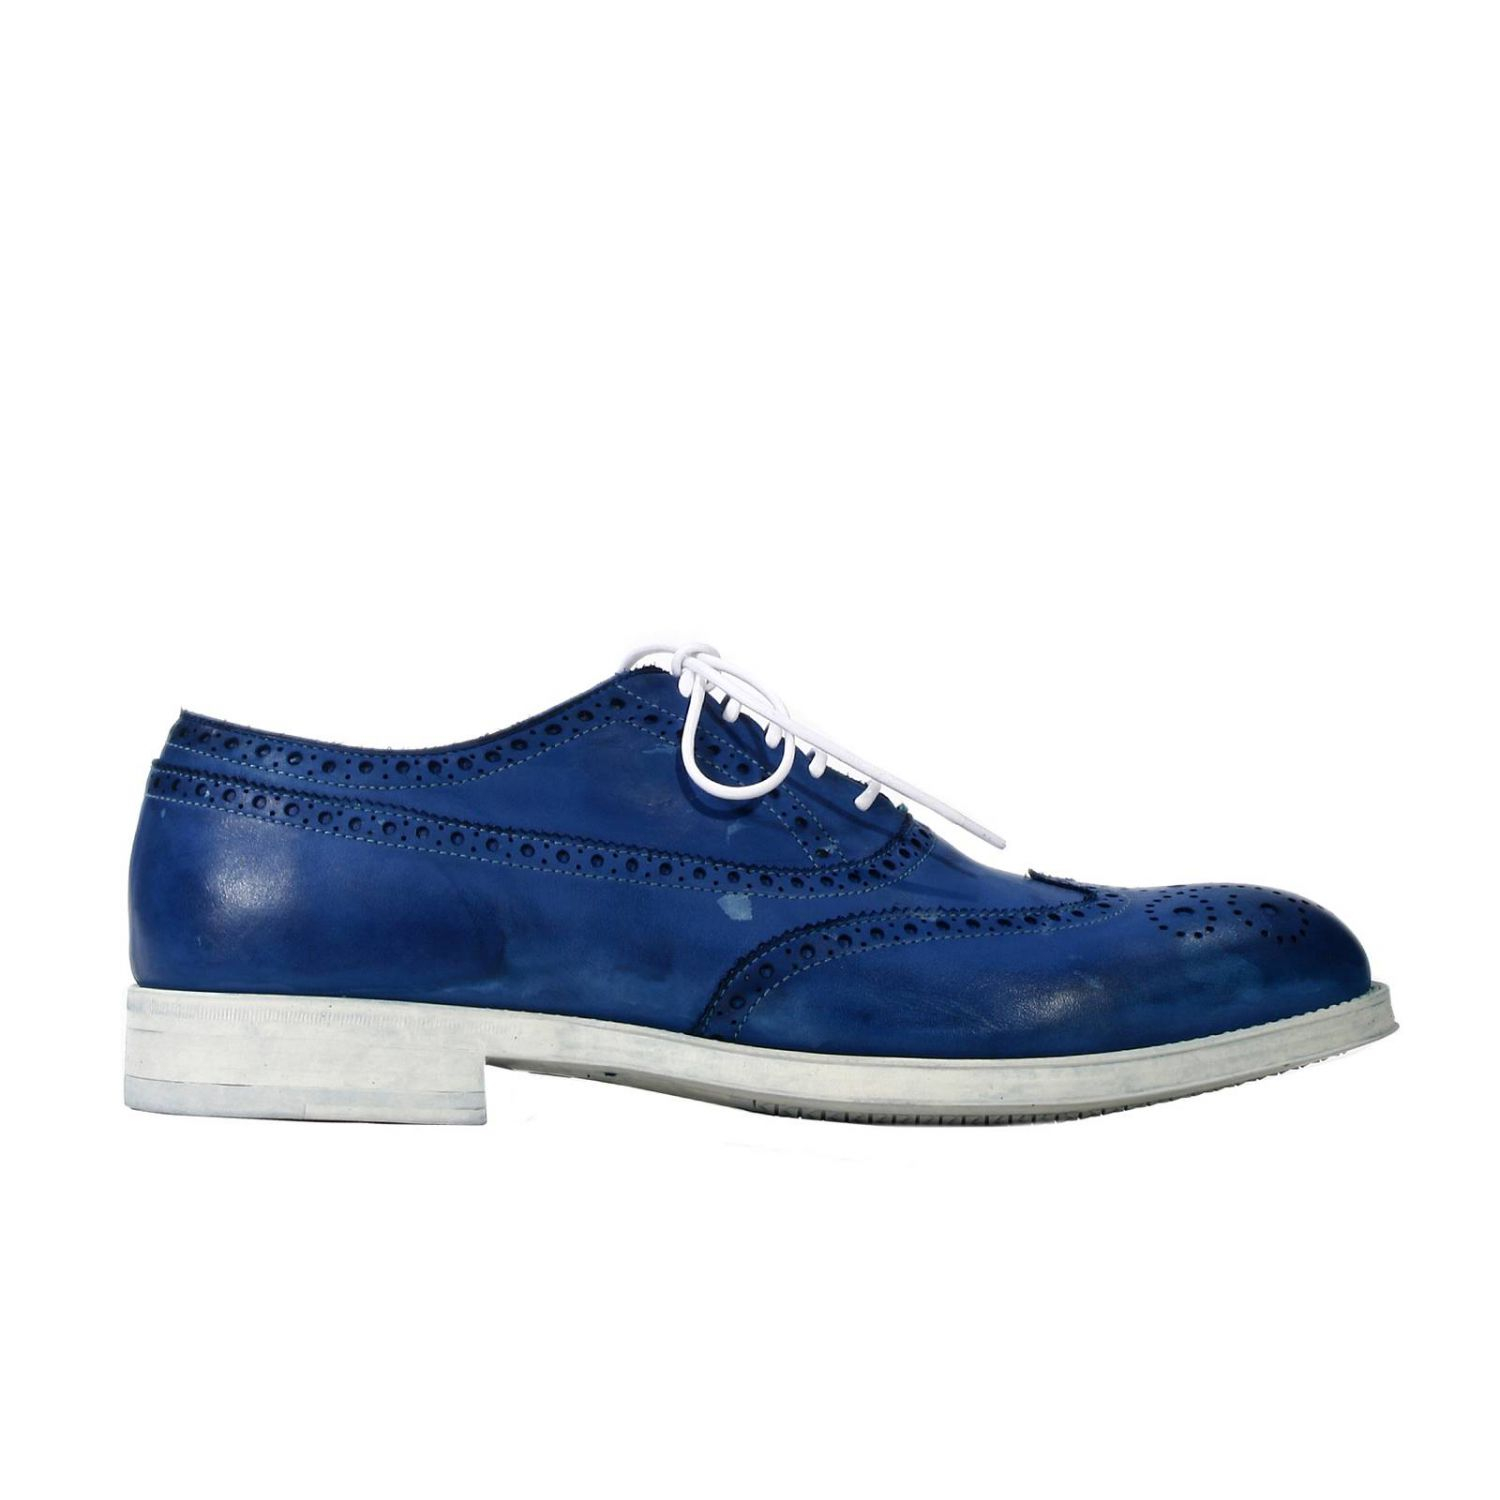 Lyst - Alberto guardiani Shoes Toki Tower Sneakers Leather